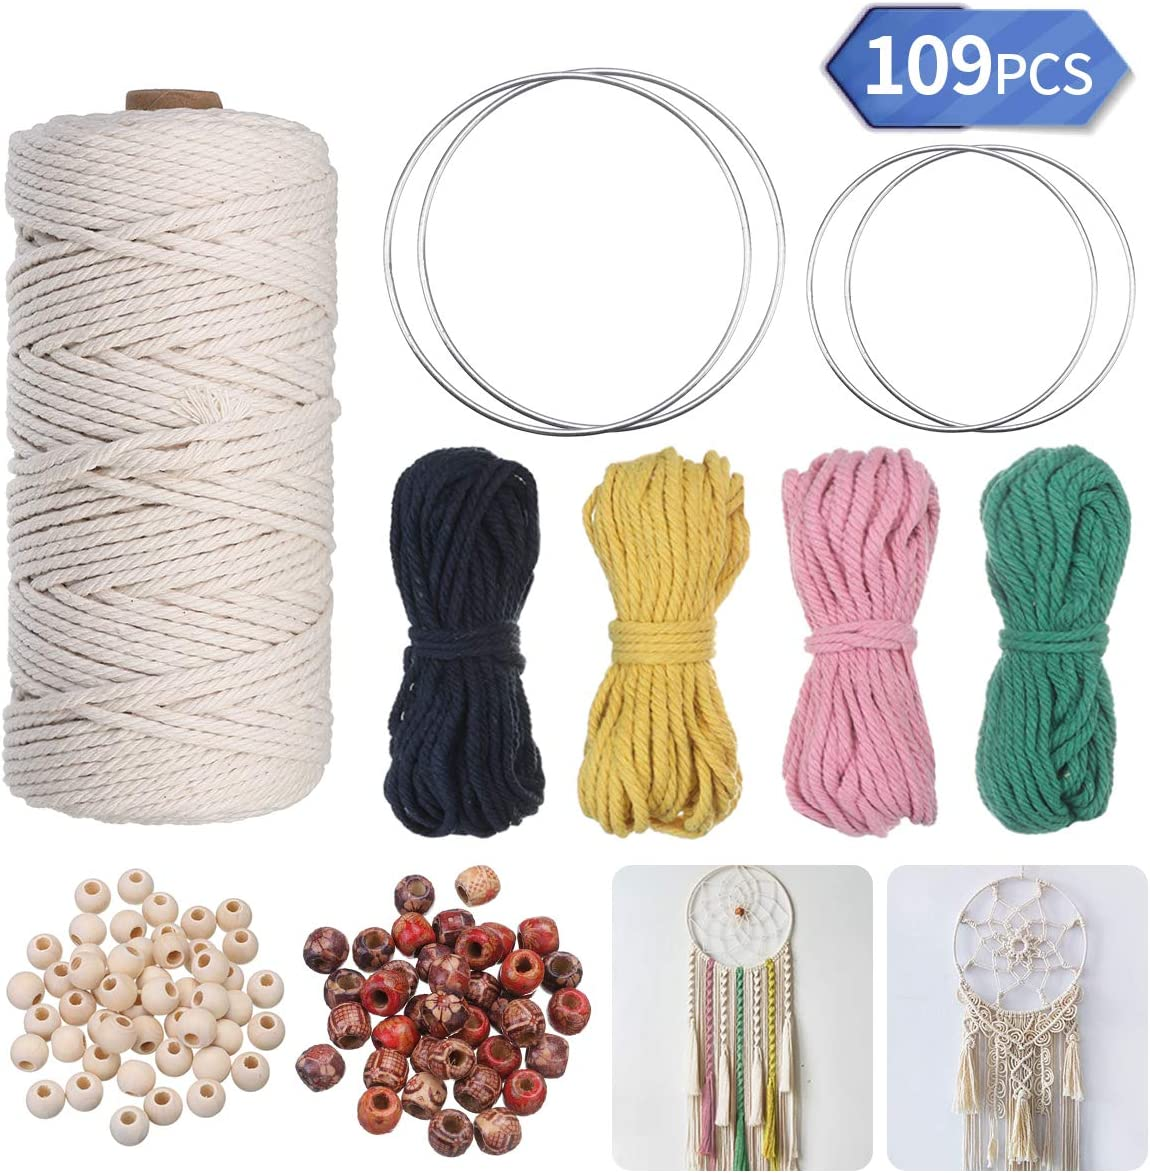 3mm x 200m 6pcs Wood Ring and 2 wooden sticks for Wall Hangings 4-strand Cotton Rope Macrame Cord Plant Hangers Gift Wrapping and Wedding Decorations - Macrame Kit with Macrame Rope Rolls